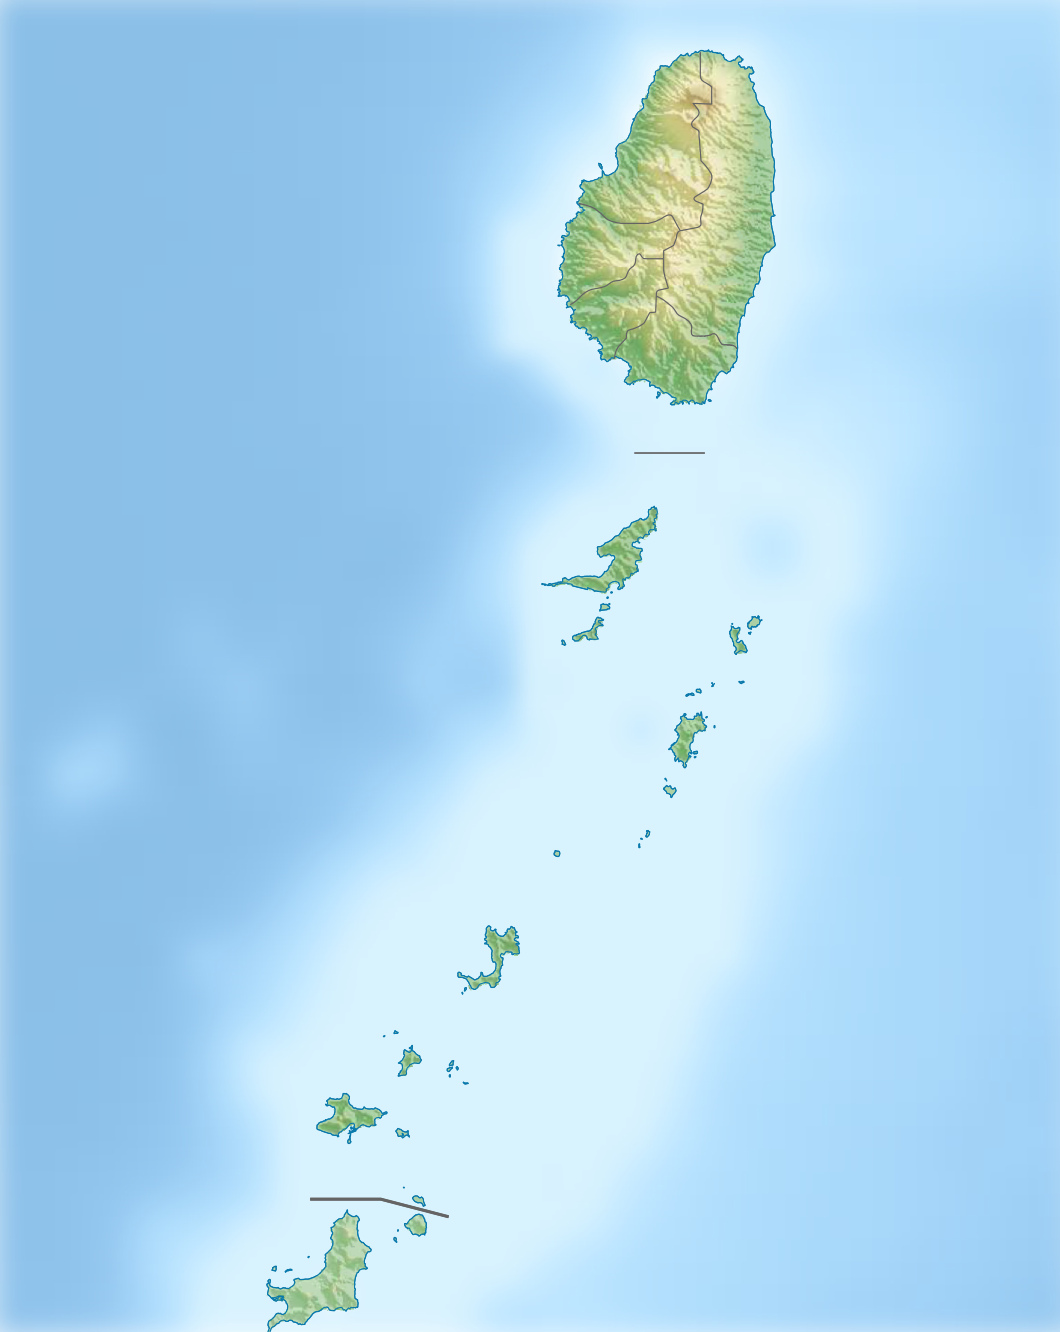 Saint_Vincent_and_the_Grenadines_relief_location_map